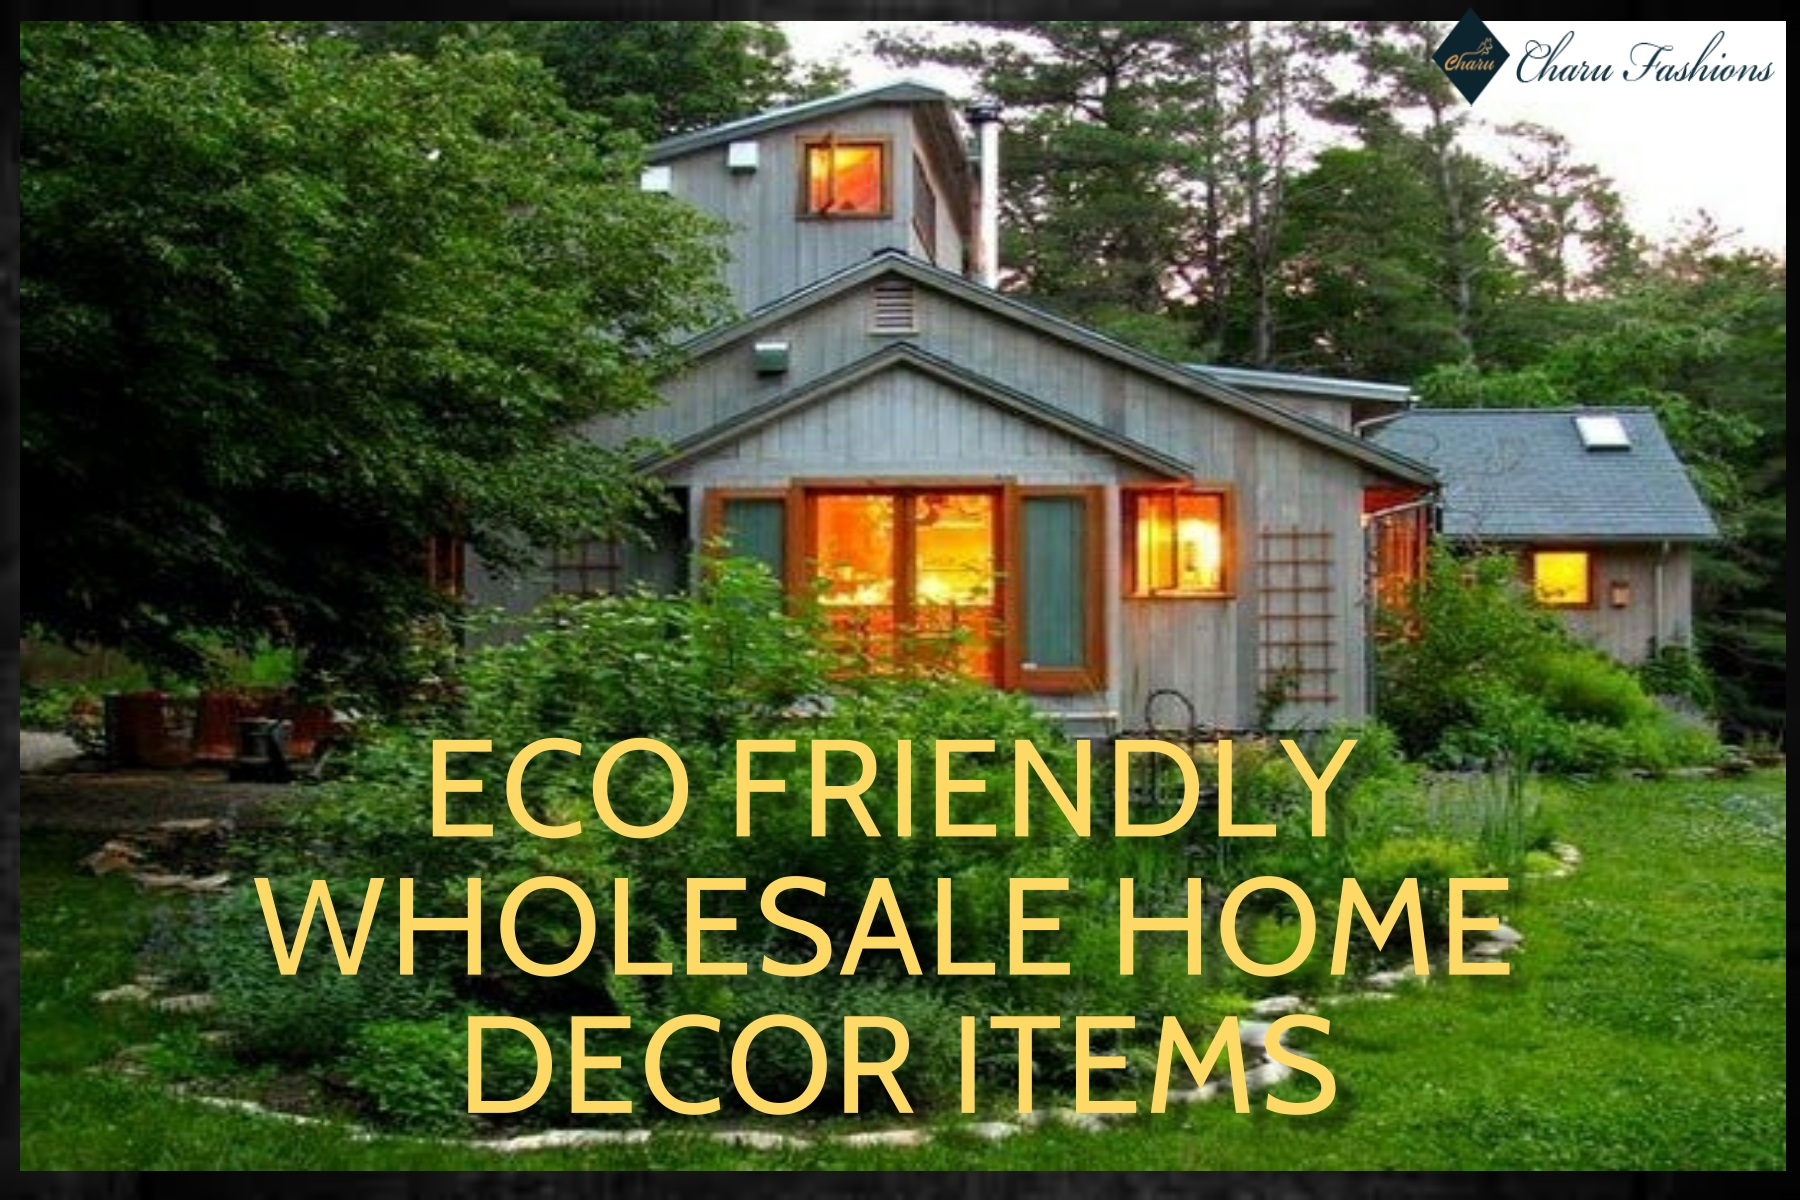 Eco friendly wholesale home decor ideas charu fashions for Home decorations wholesale